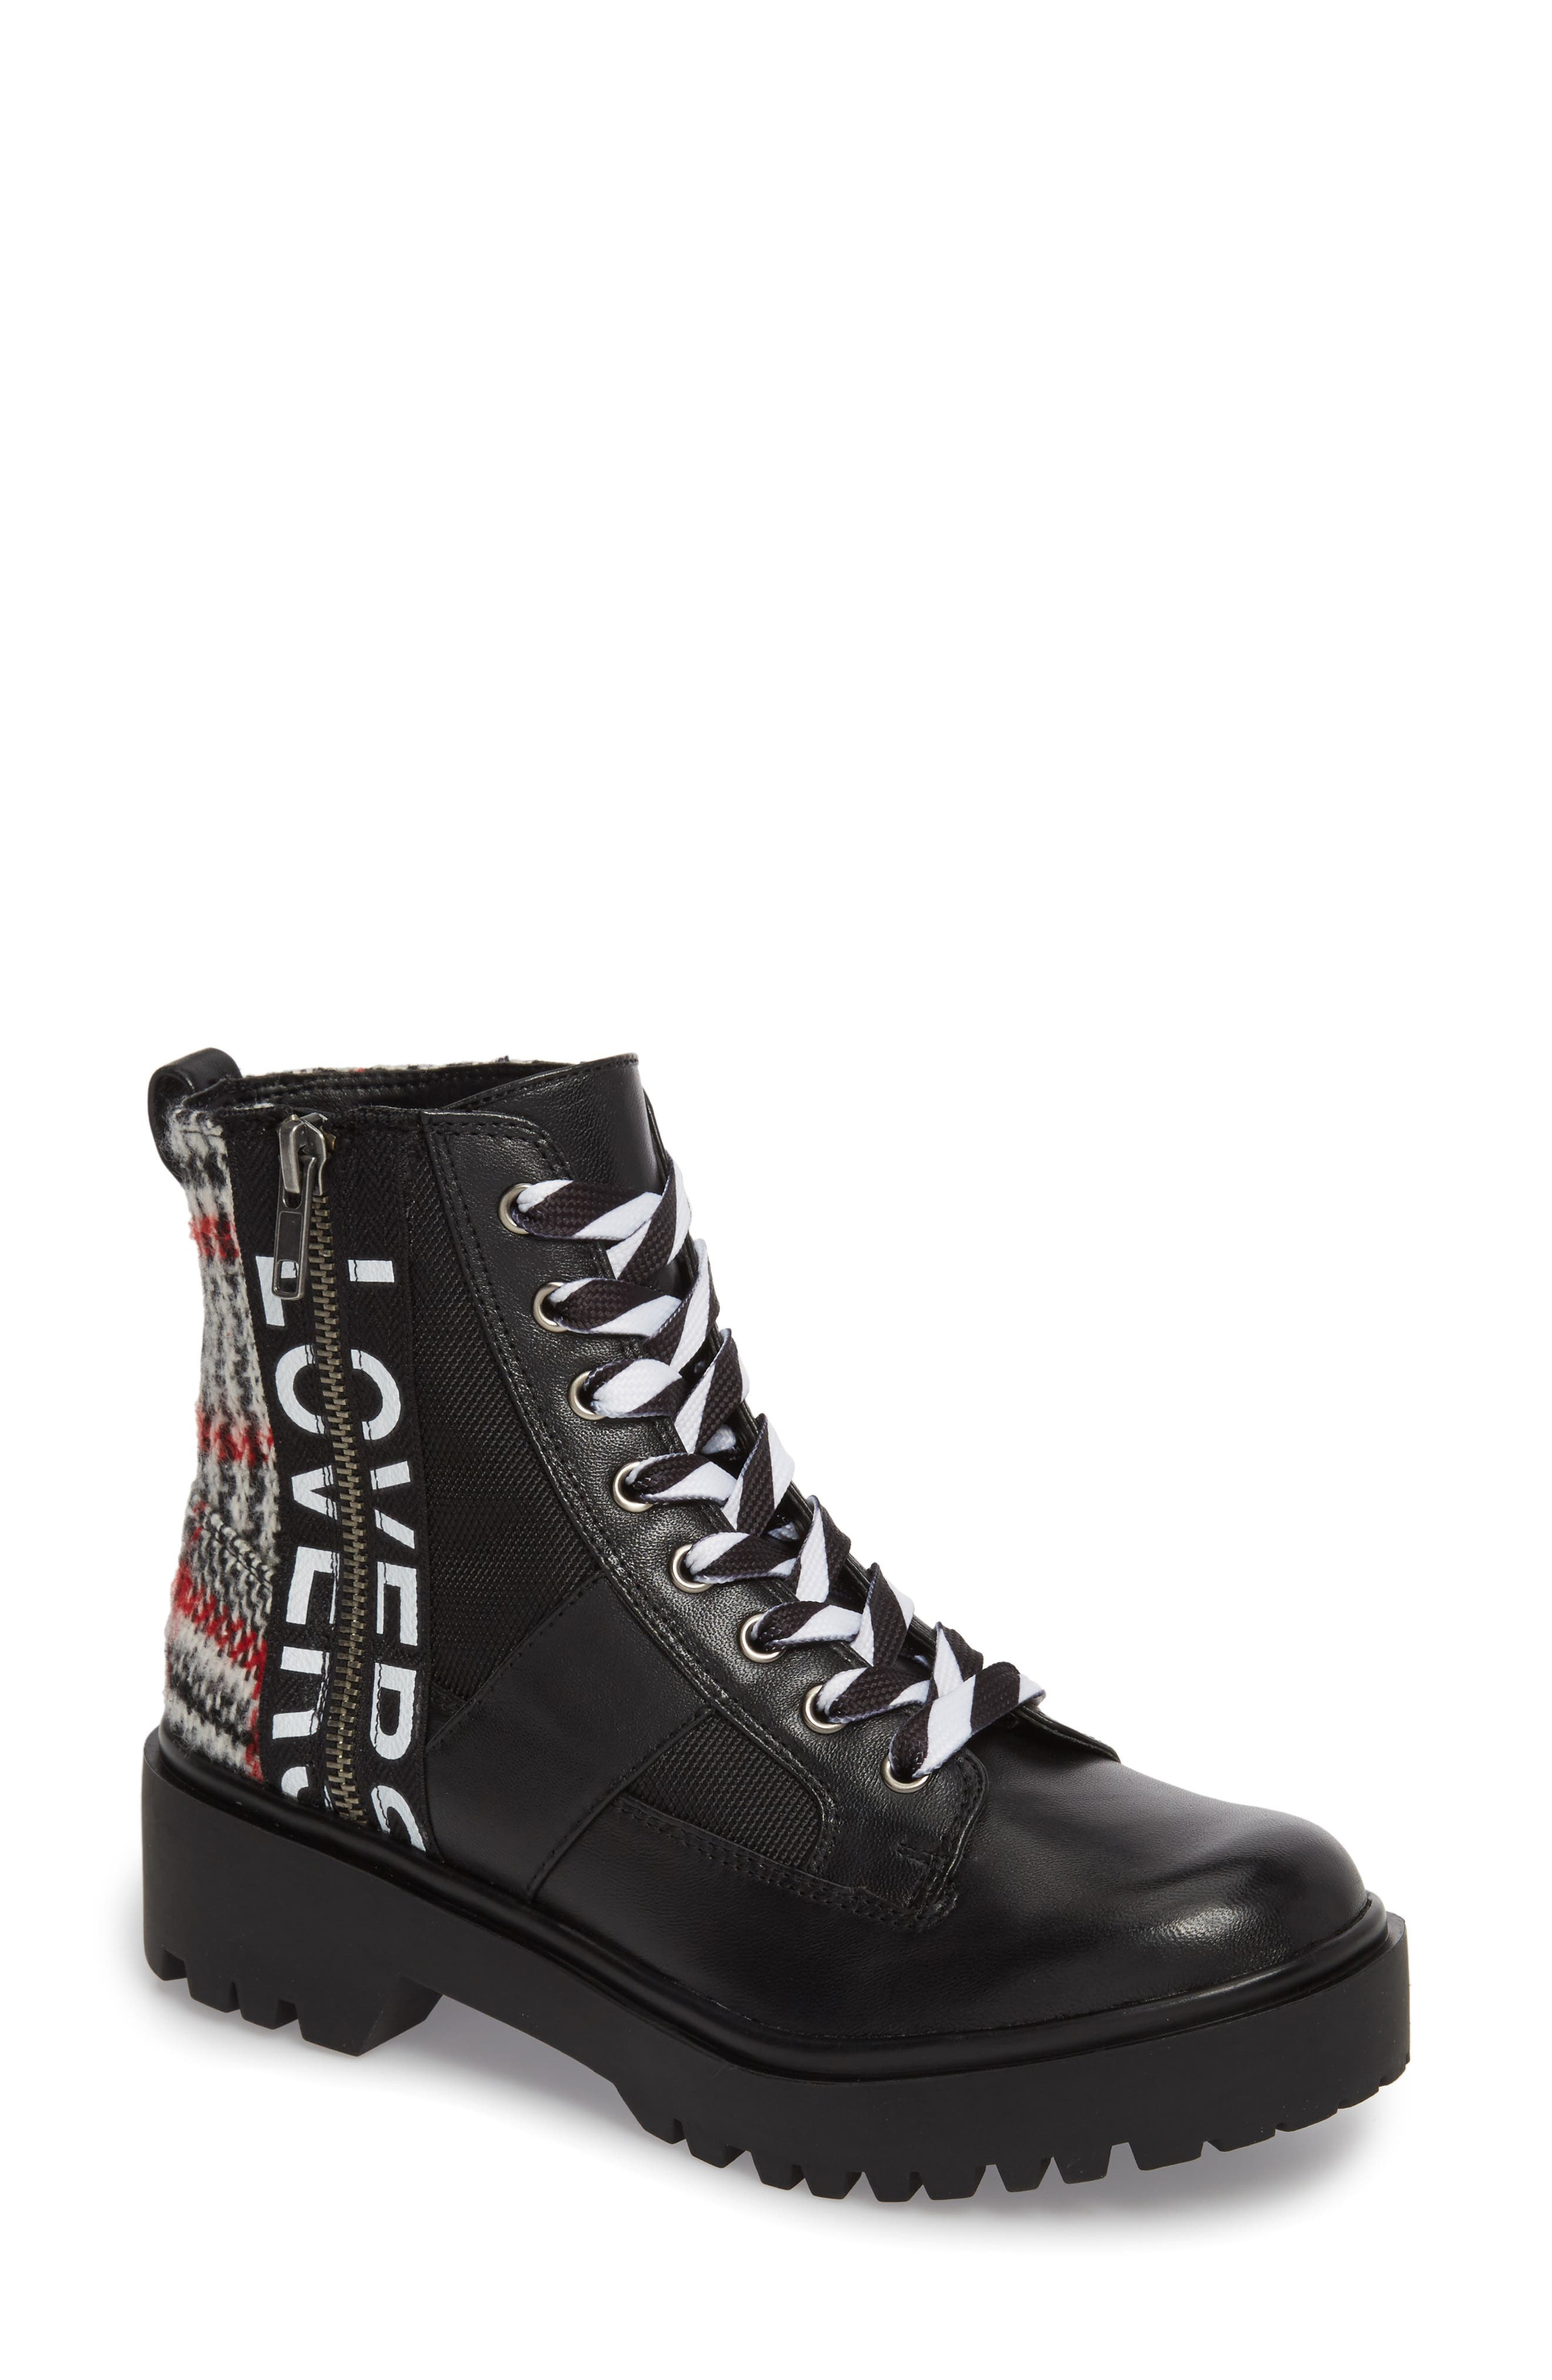 Lennox Combat Boot,                         Main,                         color, Black Multi